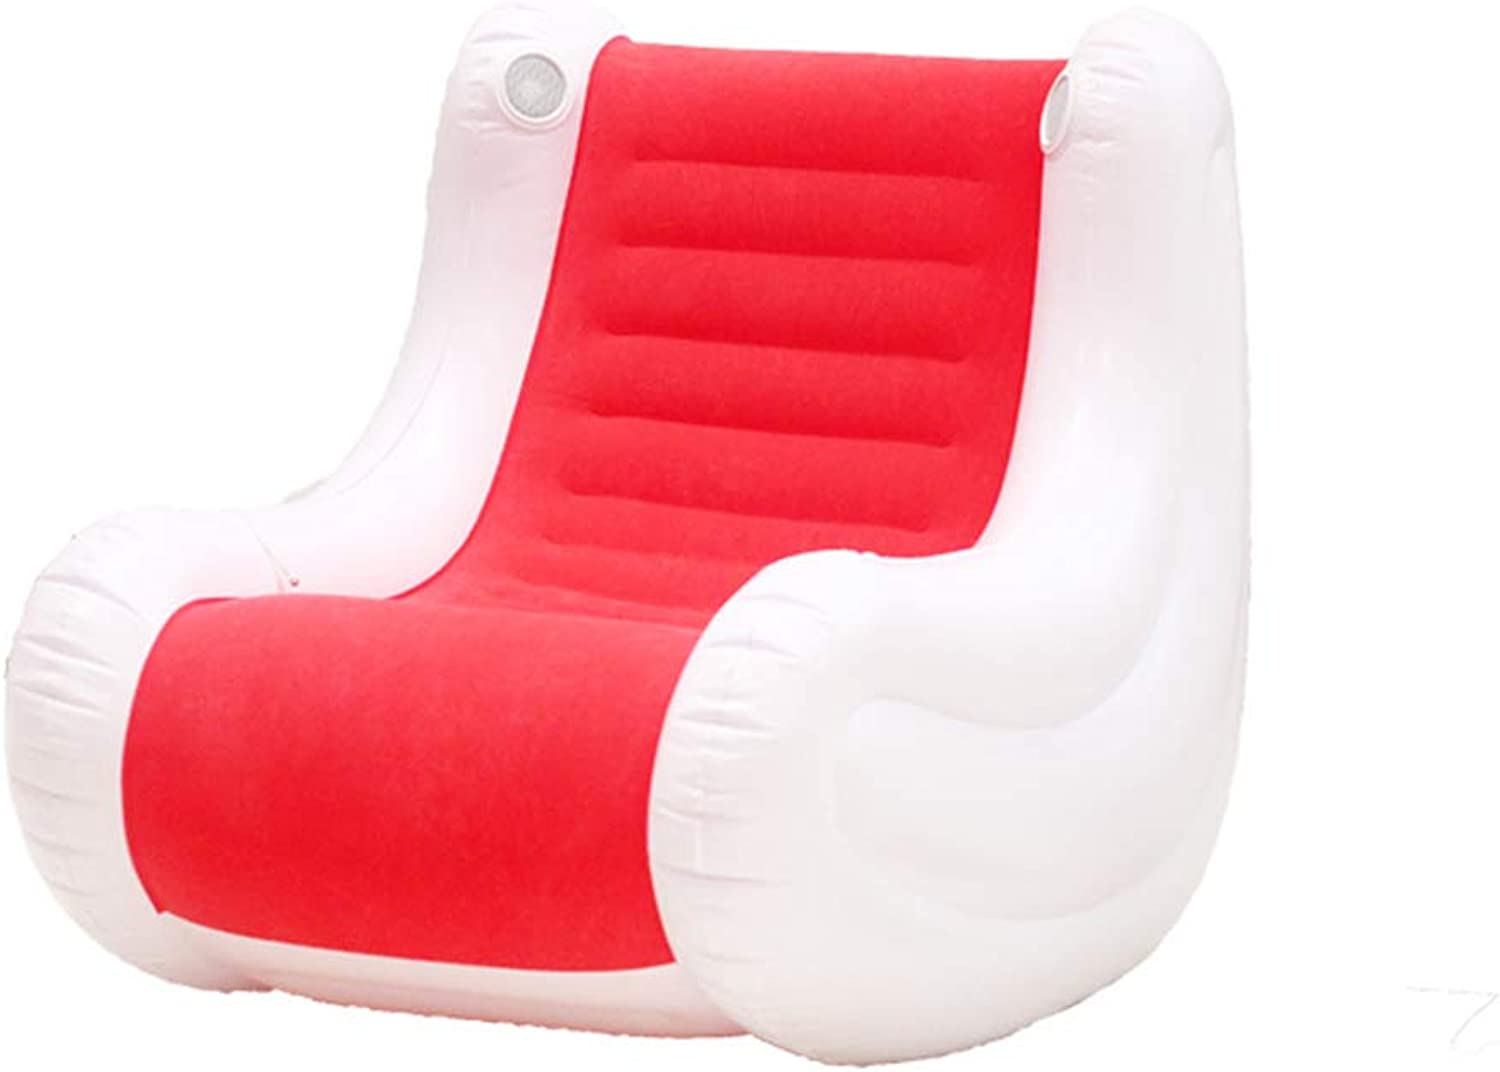 Lazy Inflatable Sofa Single Sofa Bedroom Tatami Simple Fluttering Window Chair Bean Bag Folding Sofa Transparent Inflatable Sofa Portable Sofa Chair Bed Casual air Cushion Sofa,Red